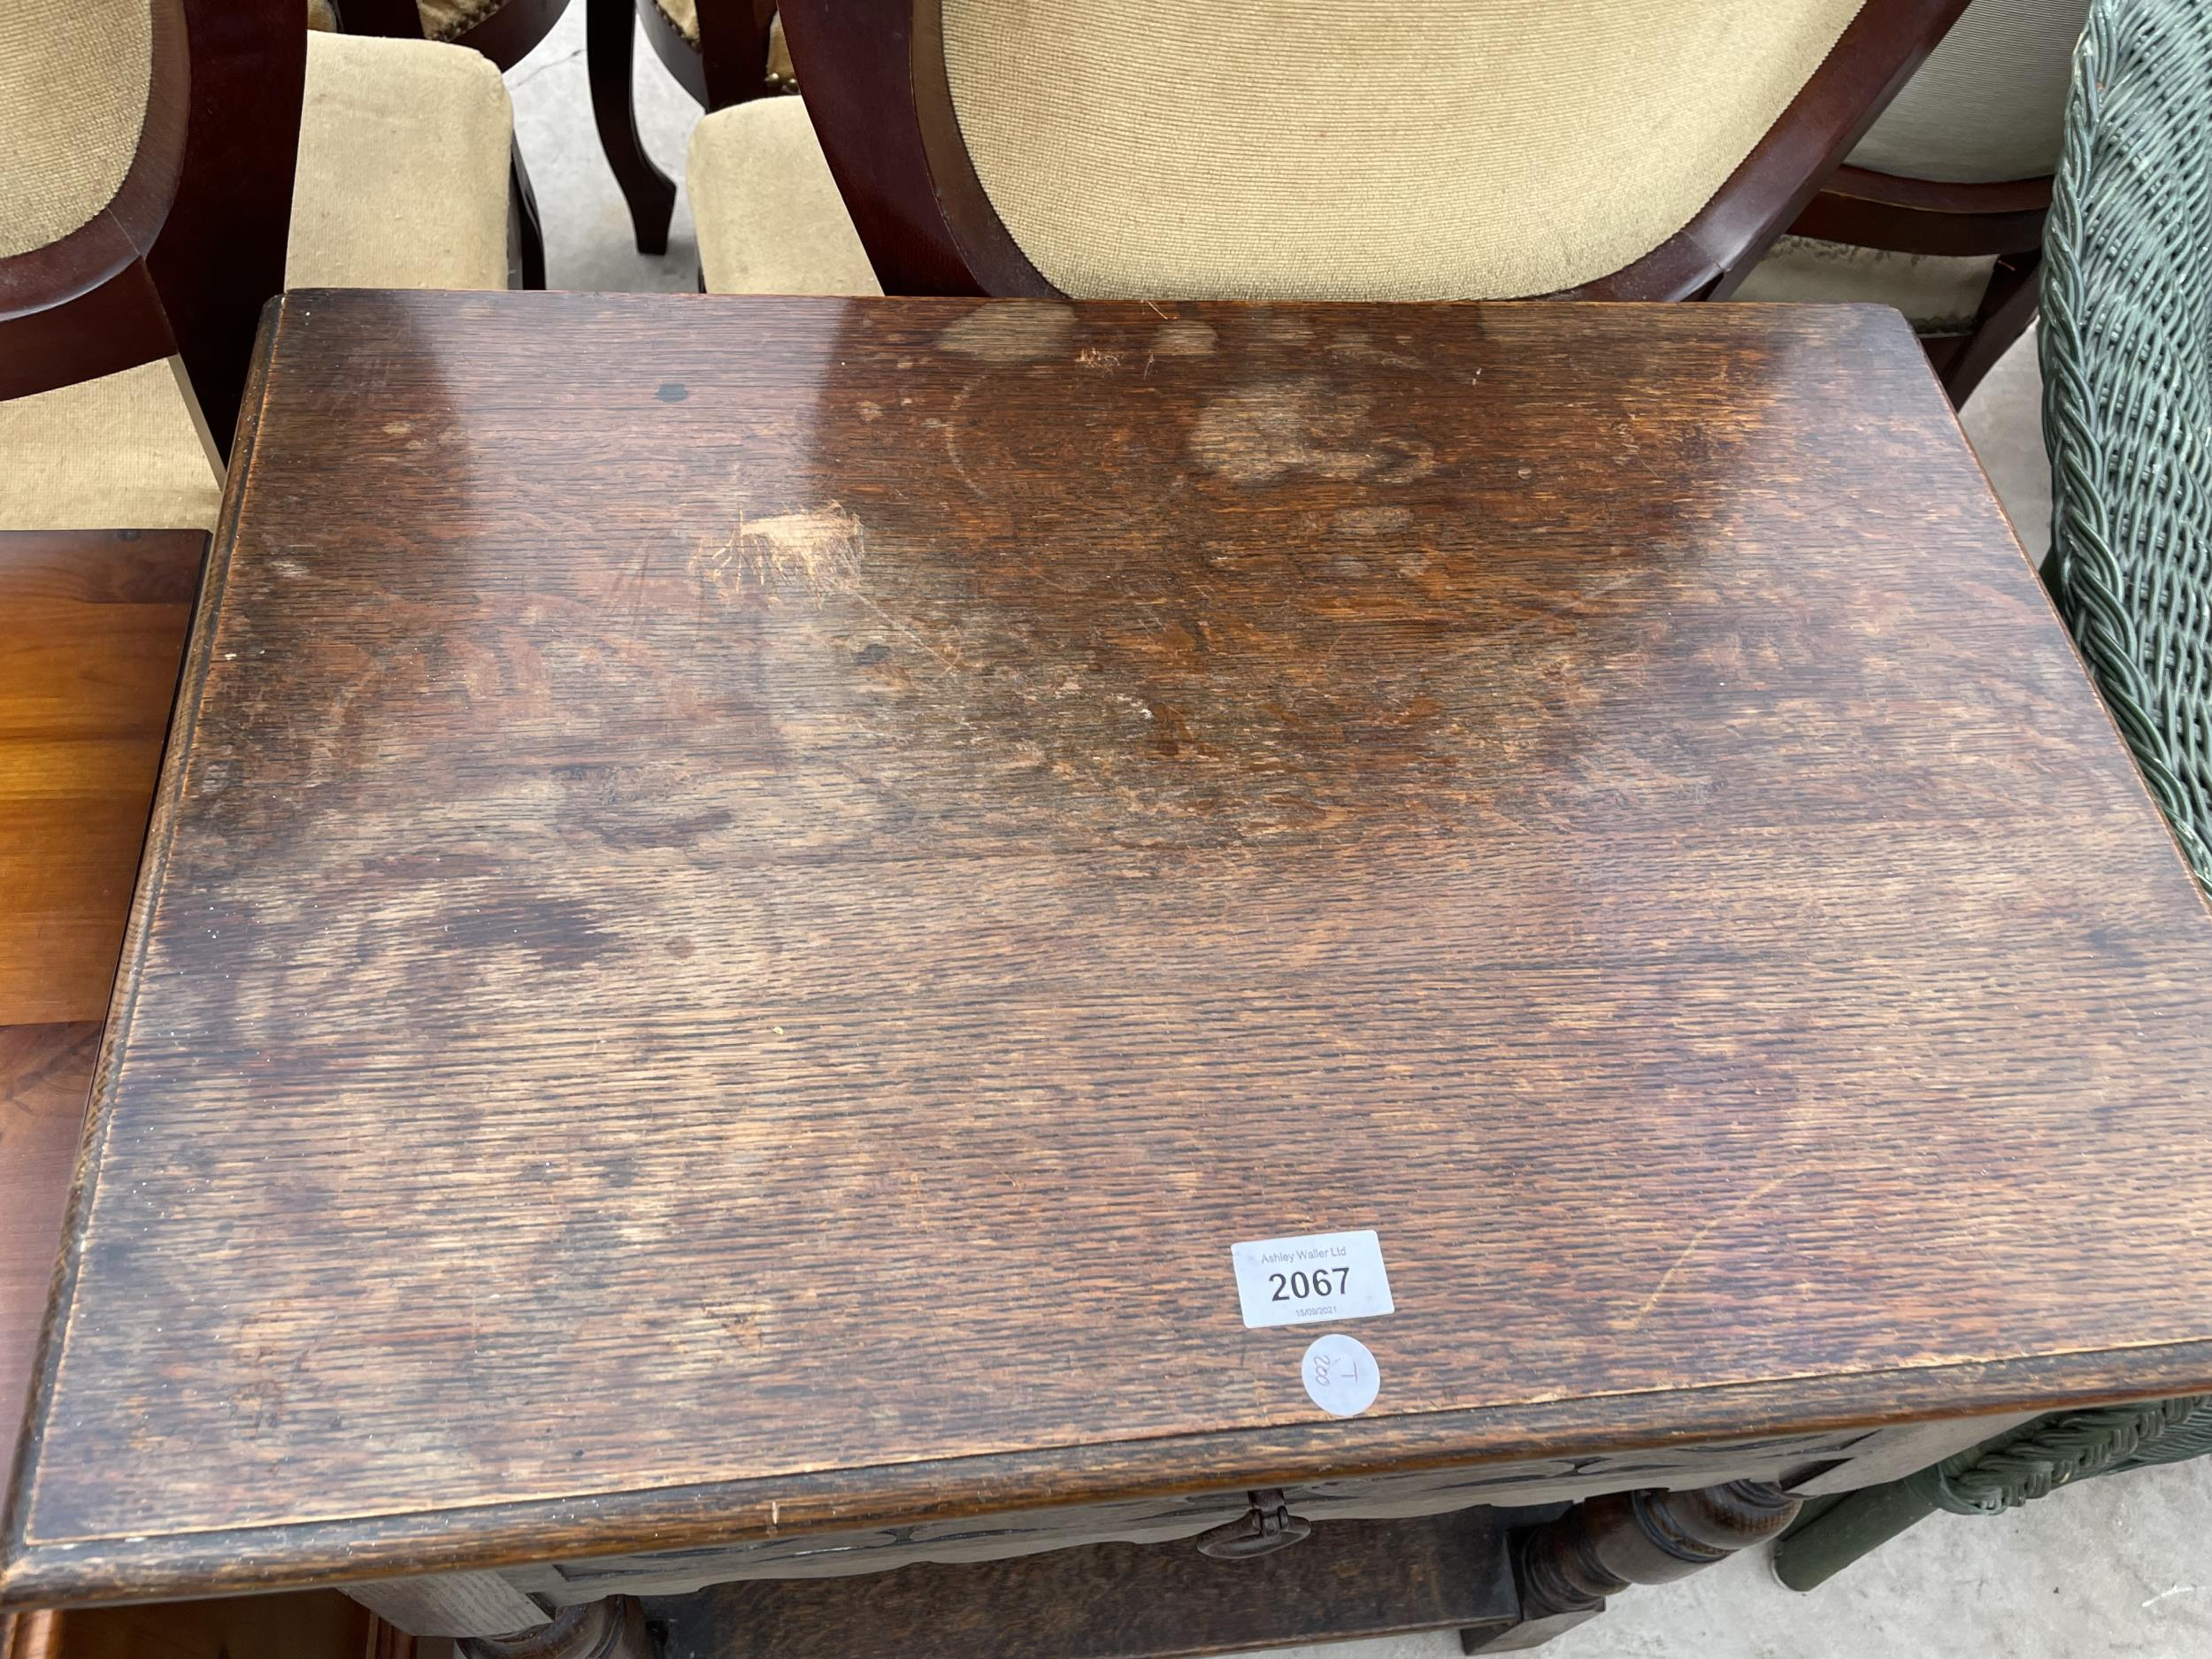 A SMALL OAK JACOBEAN STYLE TABLE WITH SINGLE DRAWER - Image 2 of 3